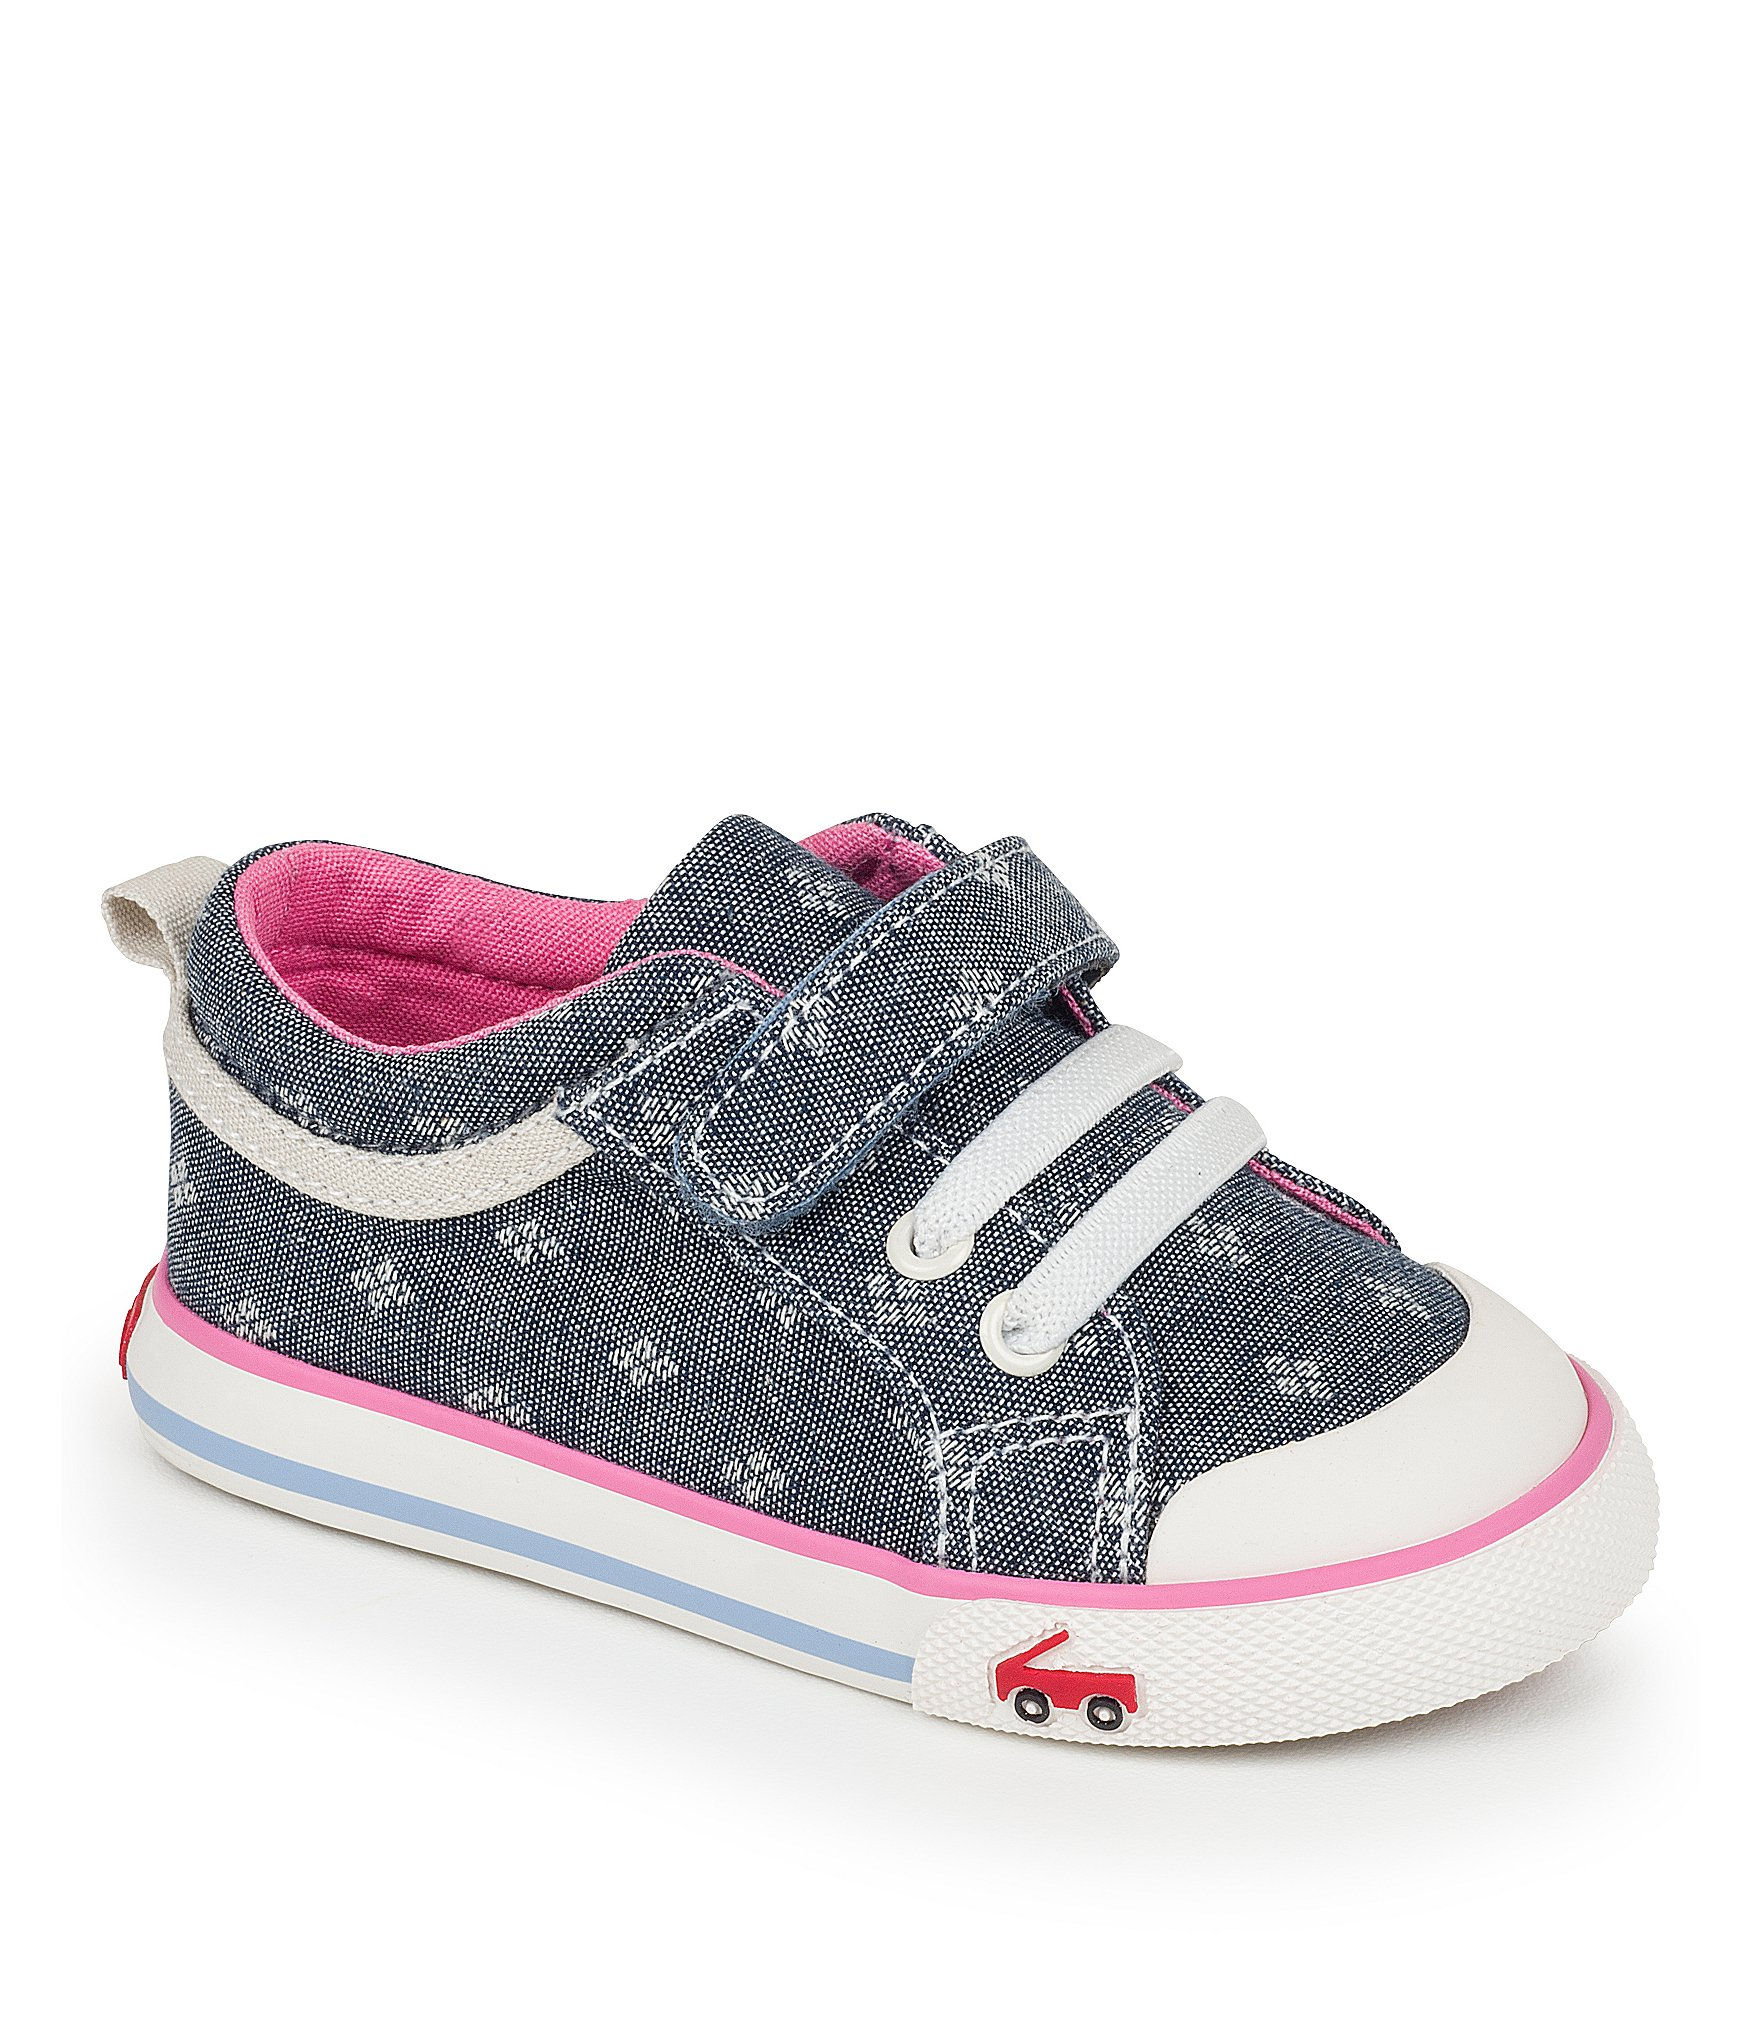 Kids' shoes with bold, hip, fun, with an urban sensibility, became the creative inspiration behind See Kai Run® shoes. See Kai Run also needed comfortable, flexible kids' shoes that could be worn in- or outdoors. Kids love the fun patterns on their feet while parents don't have to .